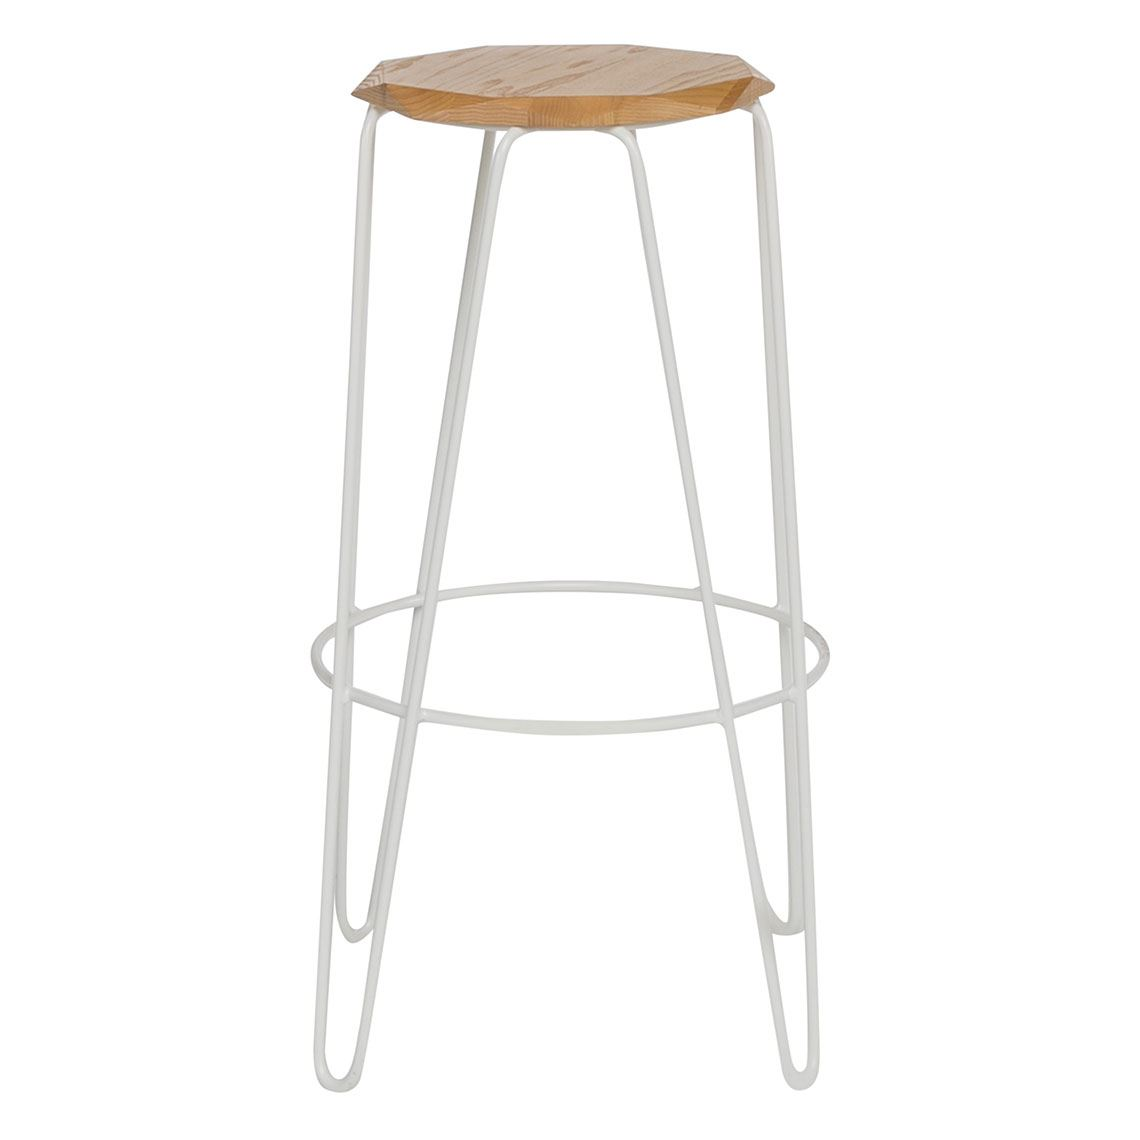 Chisel Bar Stool Size W 40cm x D 40cm x H 75cm in White Solid Ash/Metal Freedom by Freedom, a Dining Tables for sale on Style Sourcebook